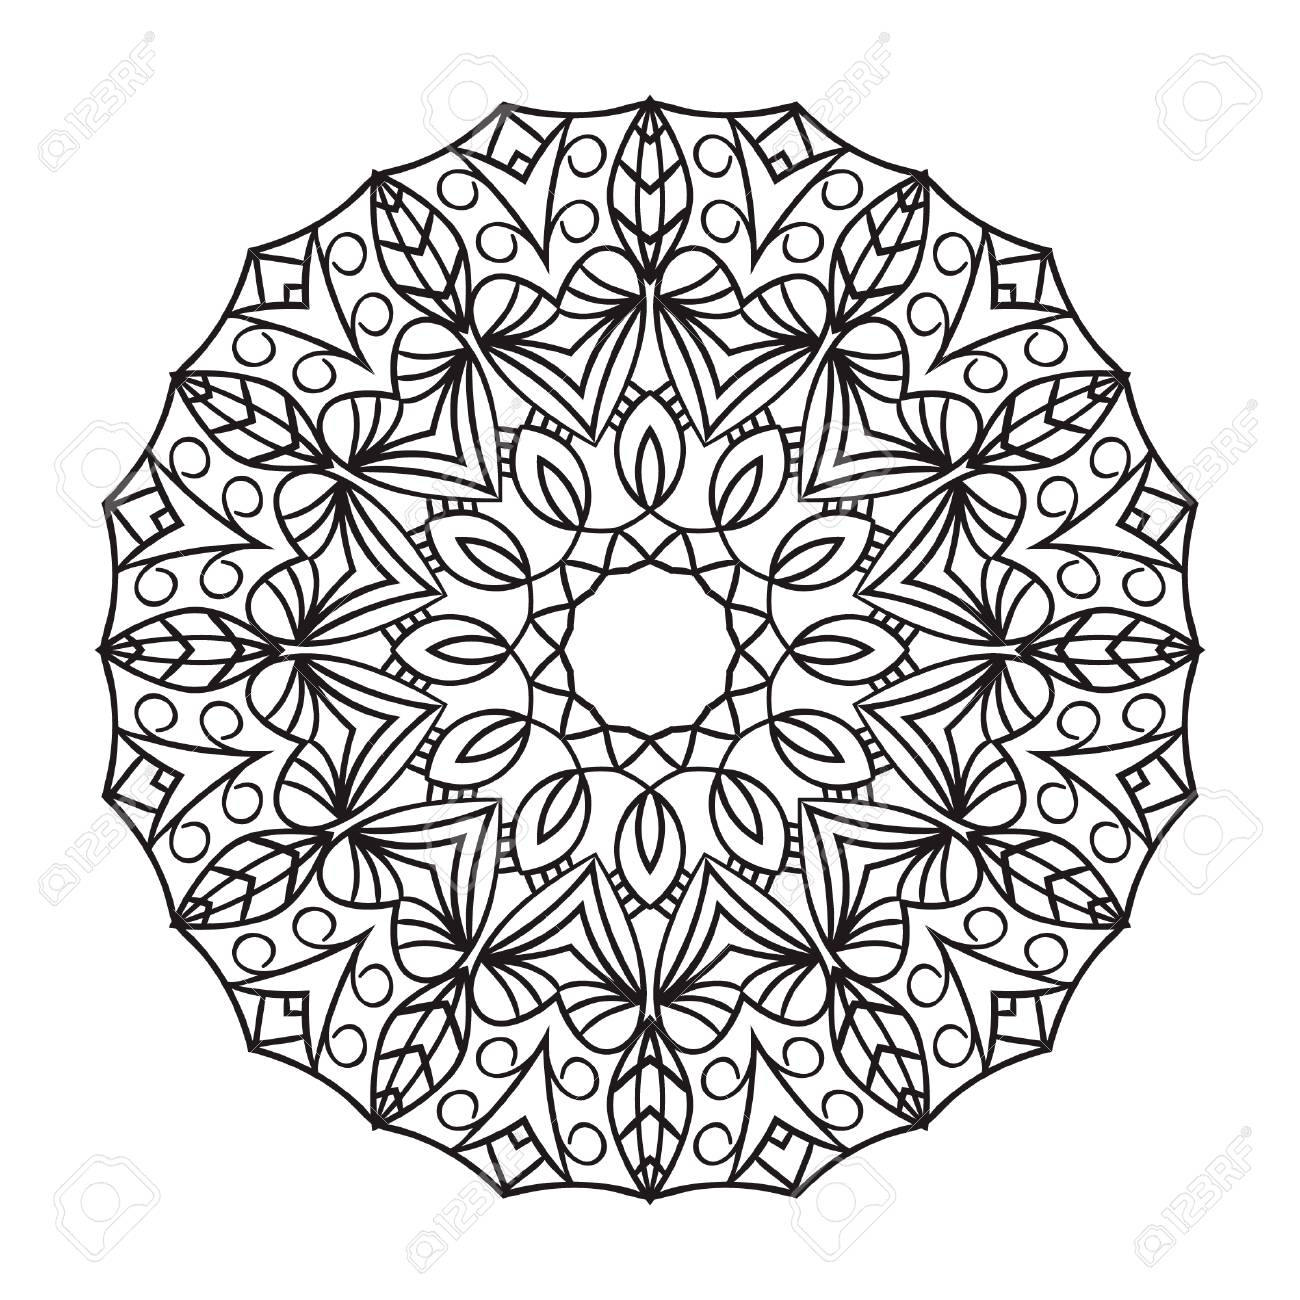 1300x1300 Mandala. Black Drawing Isolated On White. Design For Coloring